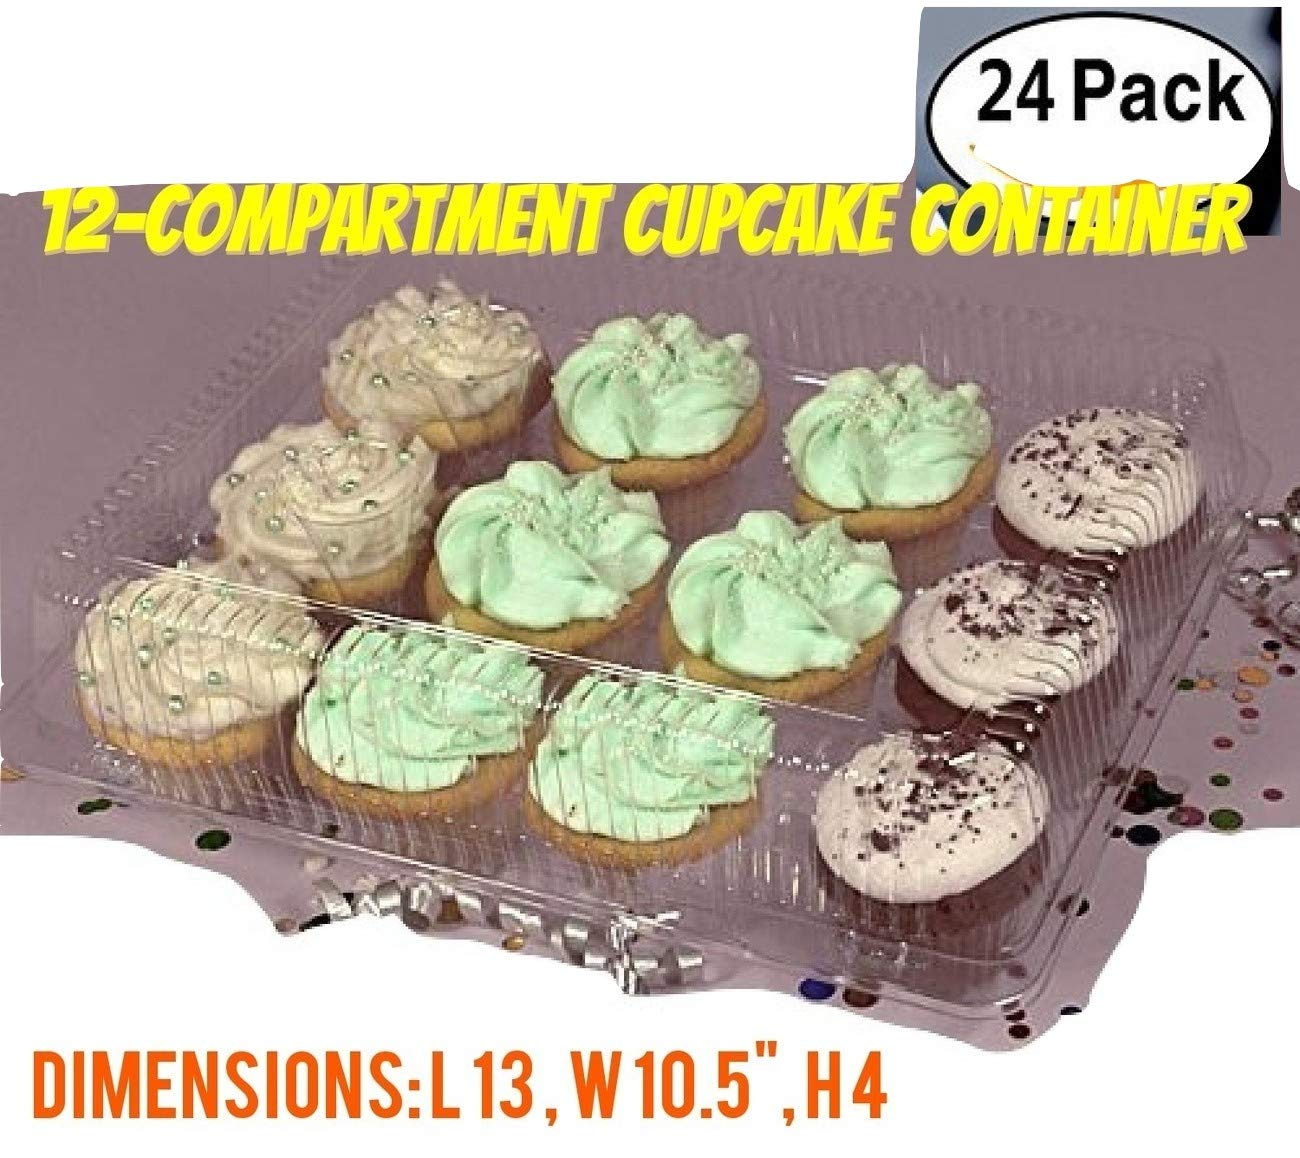 The Bakers Pantry Cupcake Boxes- Cupcake Containers 24 Pack Cupcake, Cupcake Box Container Holds 12 Cupcakes (24, 12-Compartment) by The Bakers Pantry (Image #1)